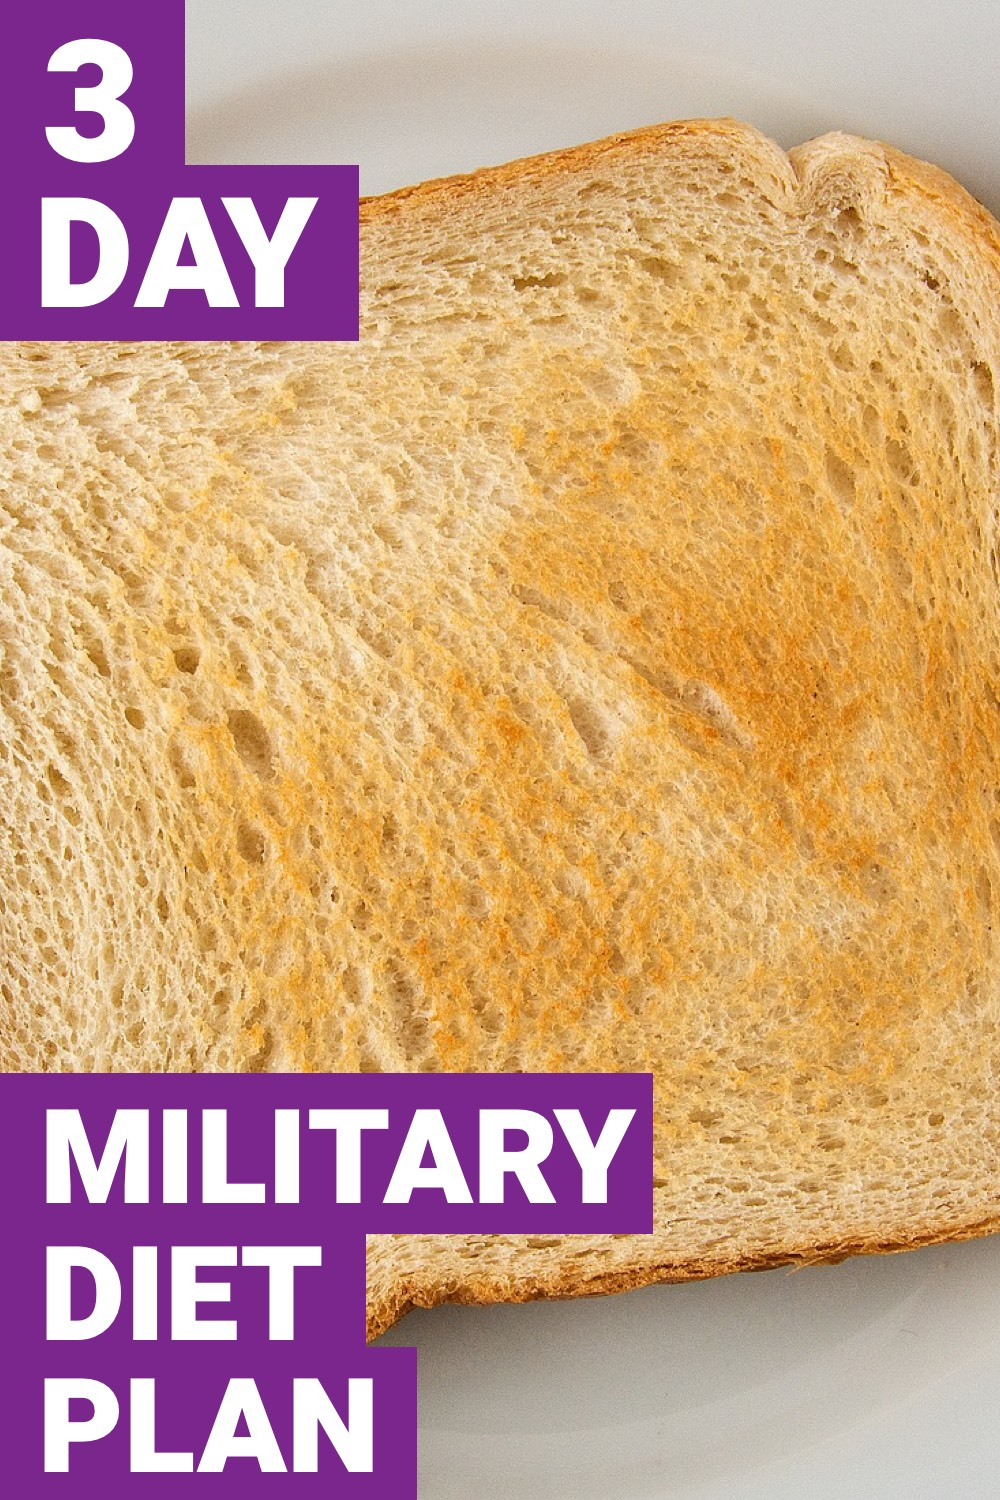 Trying the military diet can be hard for some people. What exactly goes into the military diet? Is it even successful?